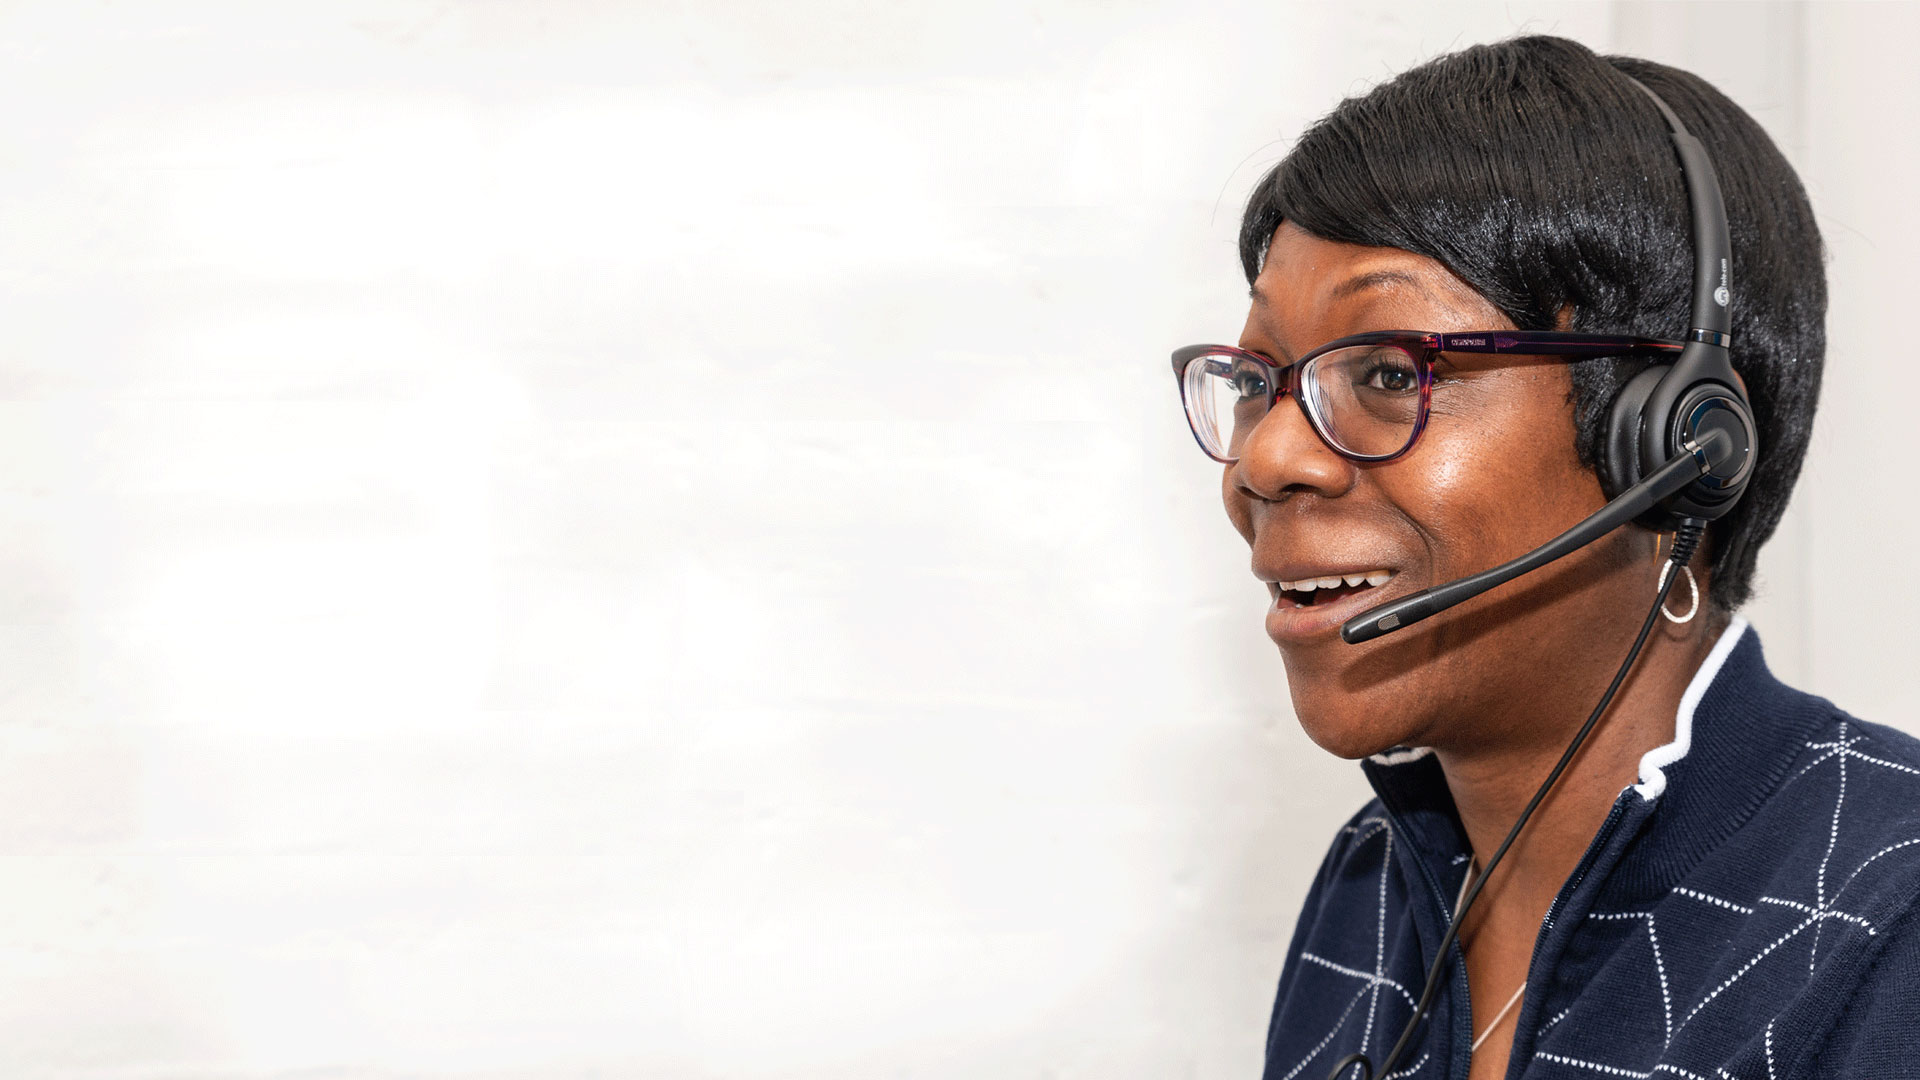 Helpline operative in profile, wearing headset and smiling